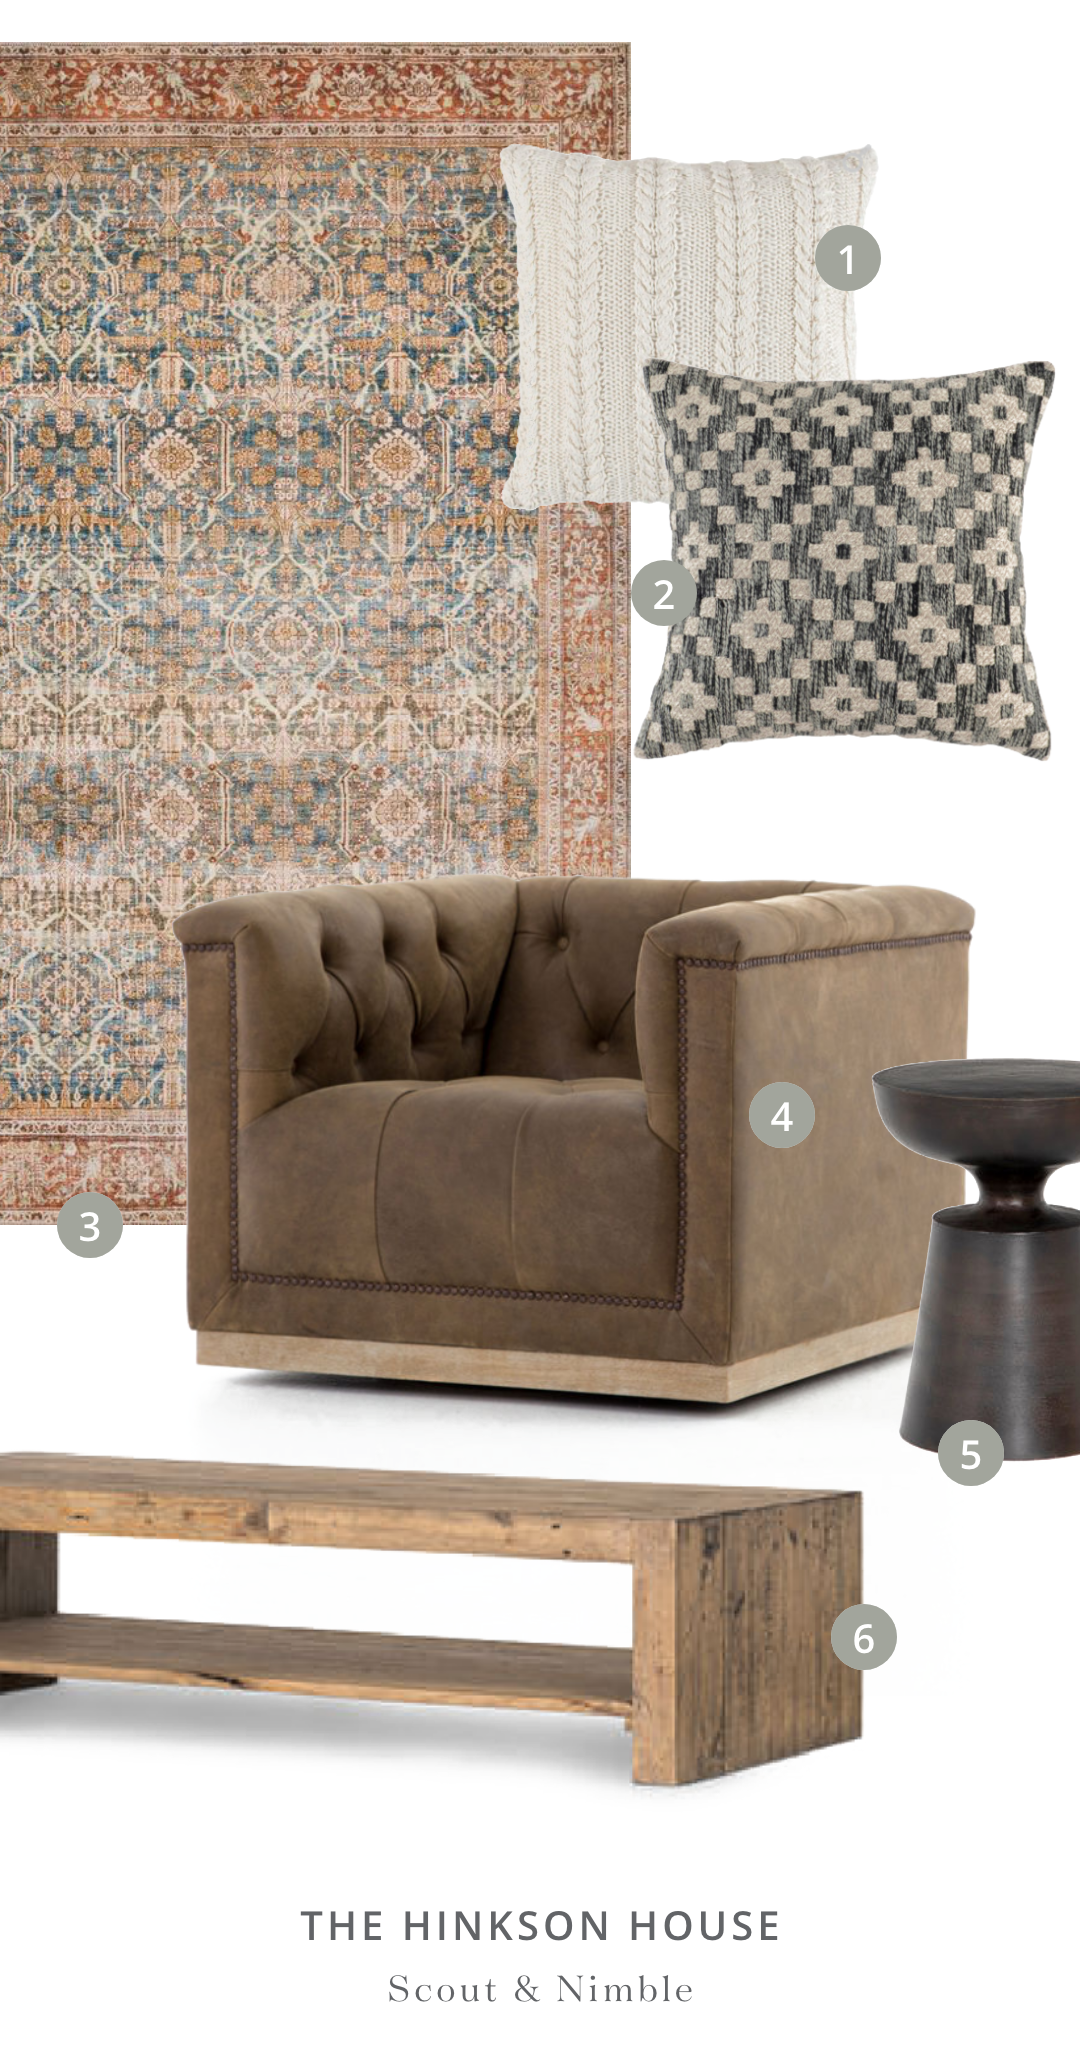 SHOP THE ROOM    |  1.  Purl Ivory Throw Pillow (Set of 2 ) 2.  Onyx Throw Pillow (Set of 2)  3.  Layla Rug in Ocean/Rust  4.  Maxx Swivel Chair  5.  Cruz End Table  6.  Beckworth Coffee Table